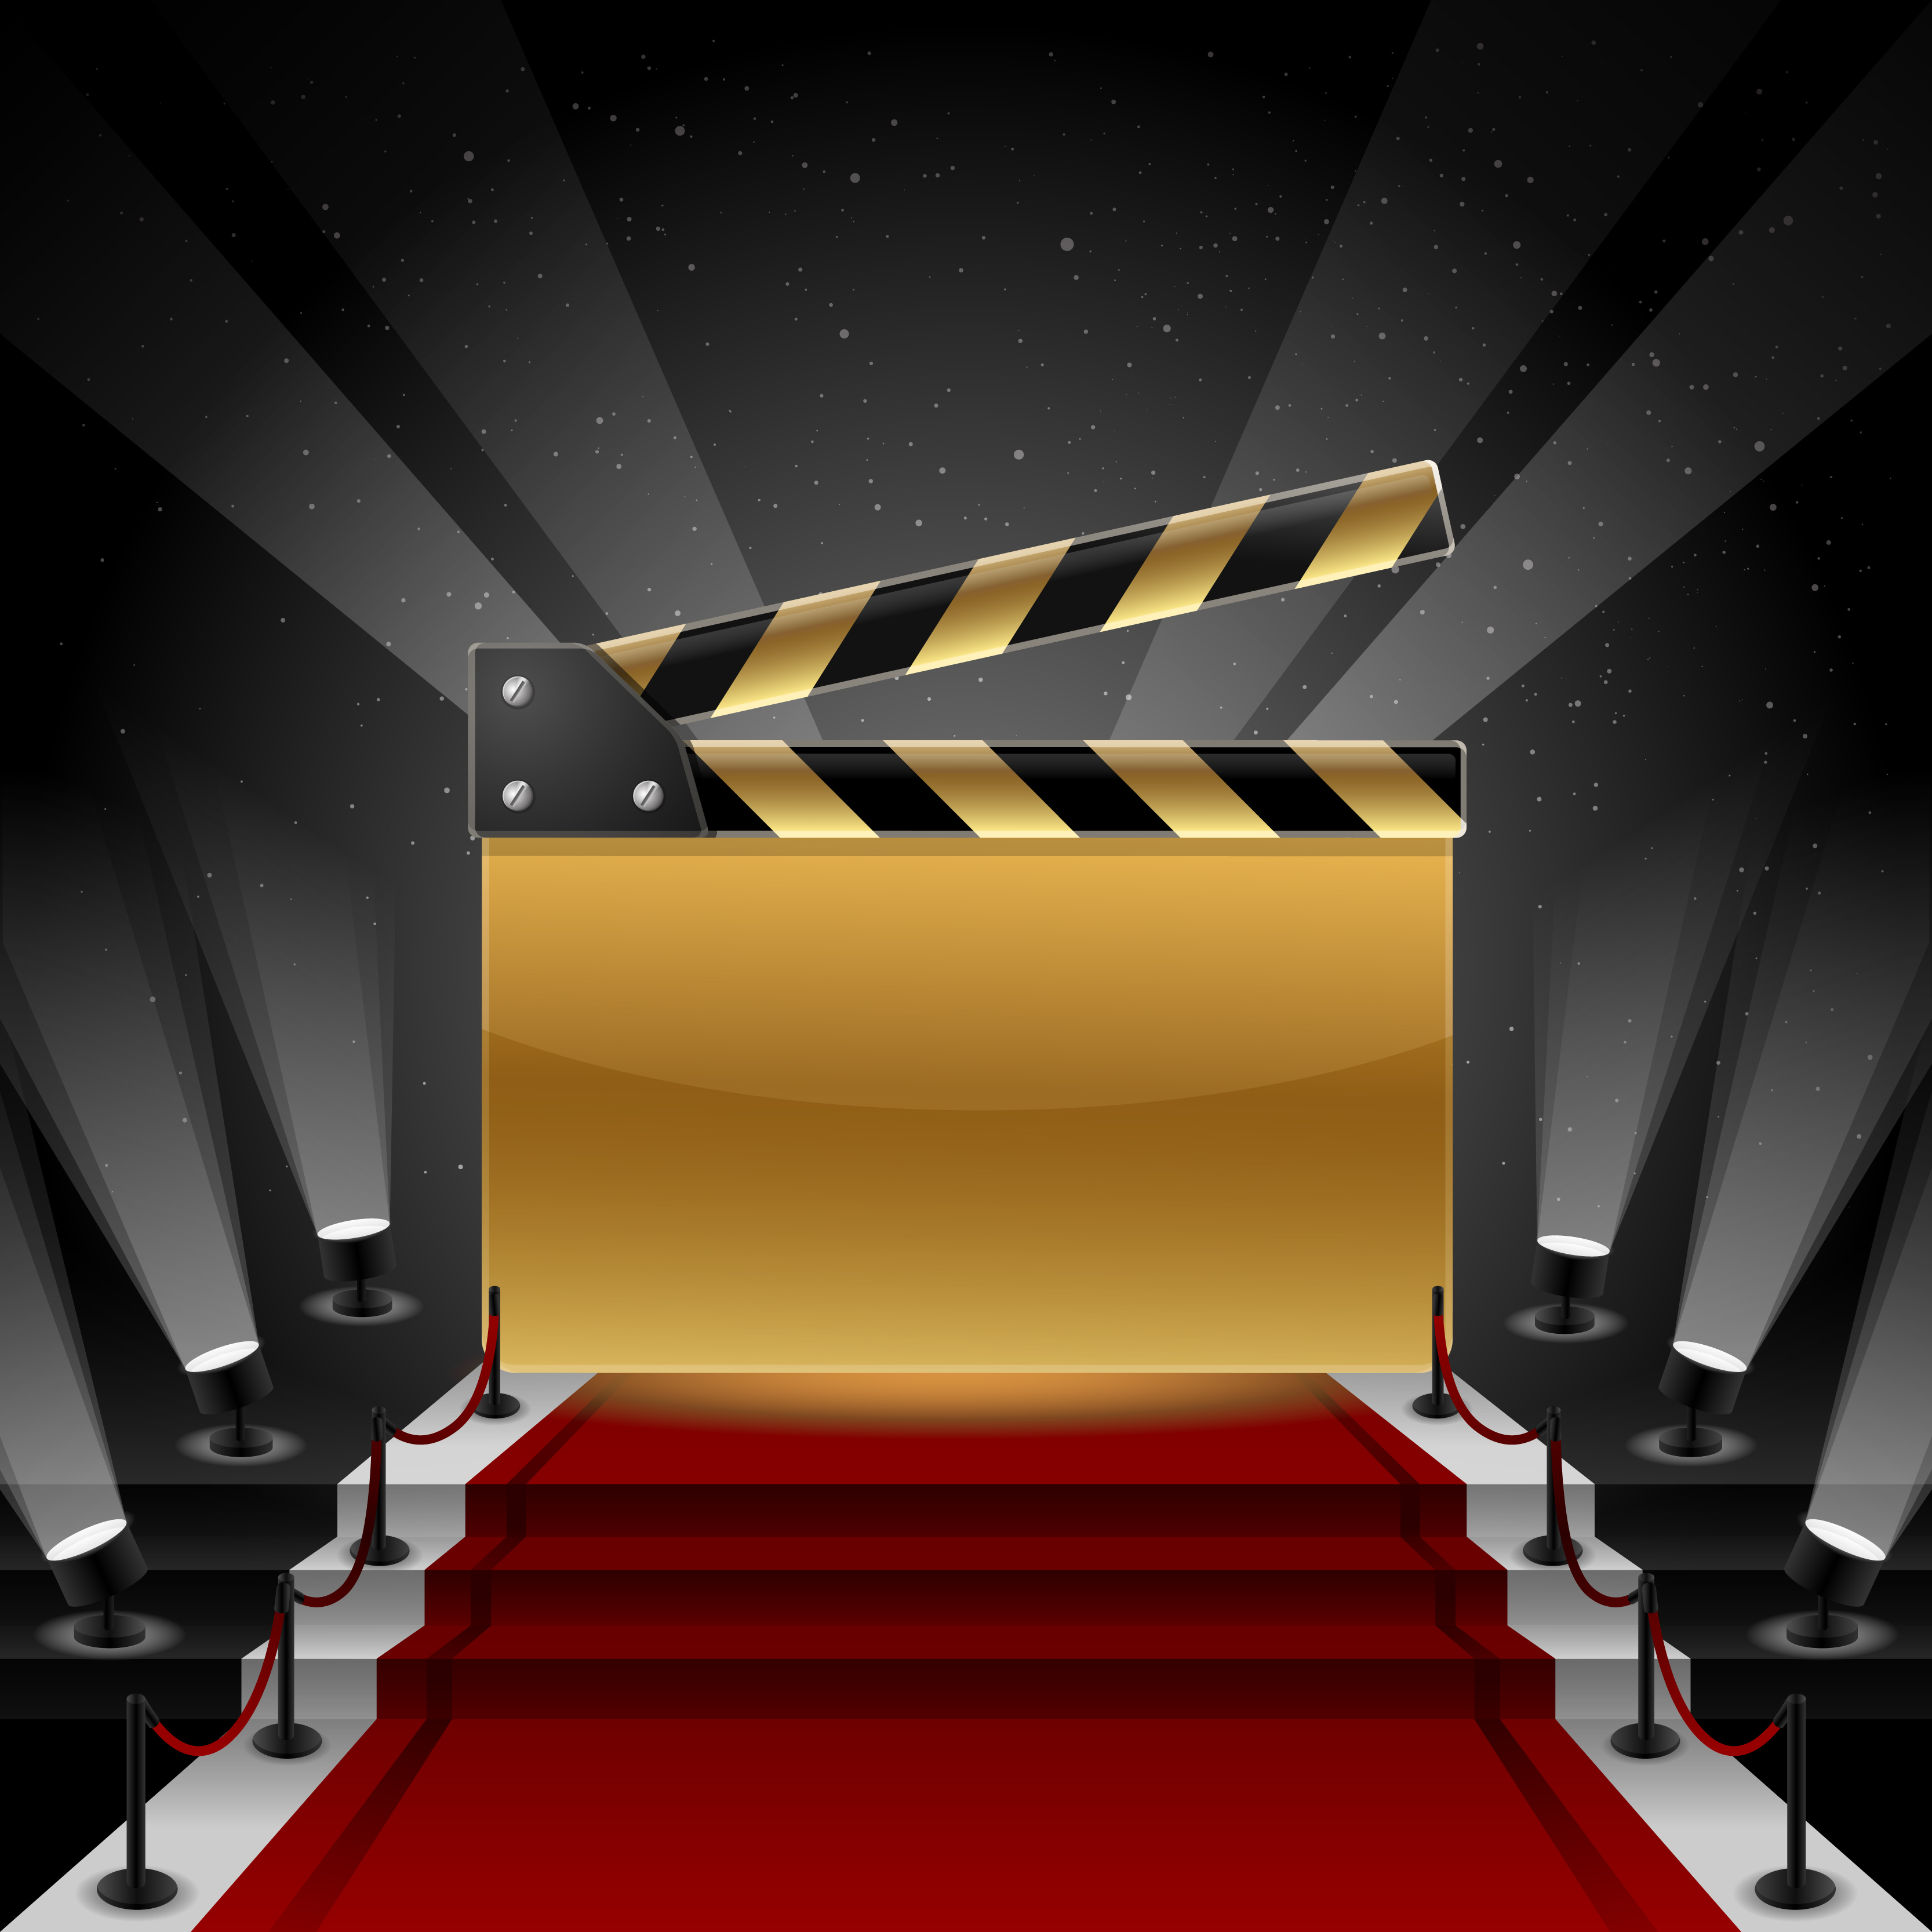 Movie theme clipart vector library download Free Movie Theme Cliparts, Download Free Clip Art, Free Clip ... vector library download